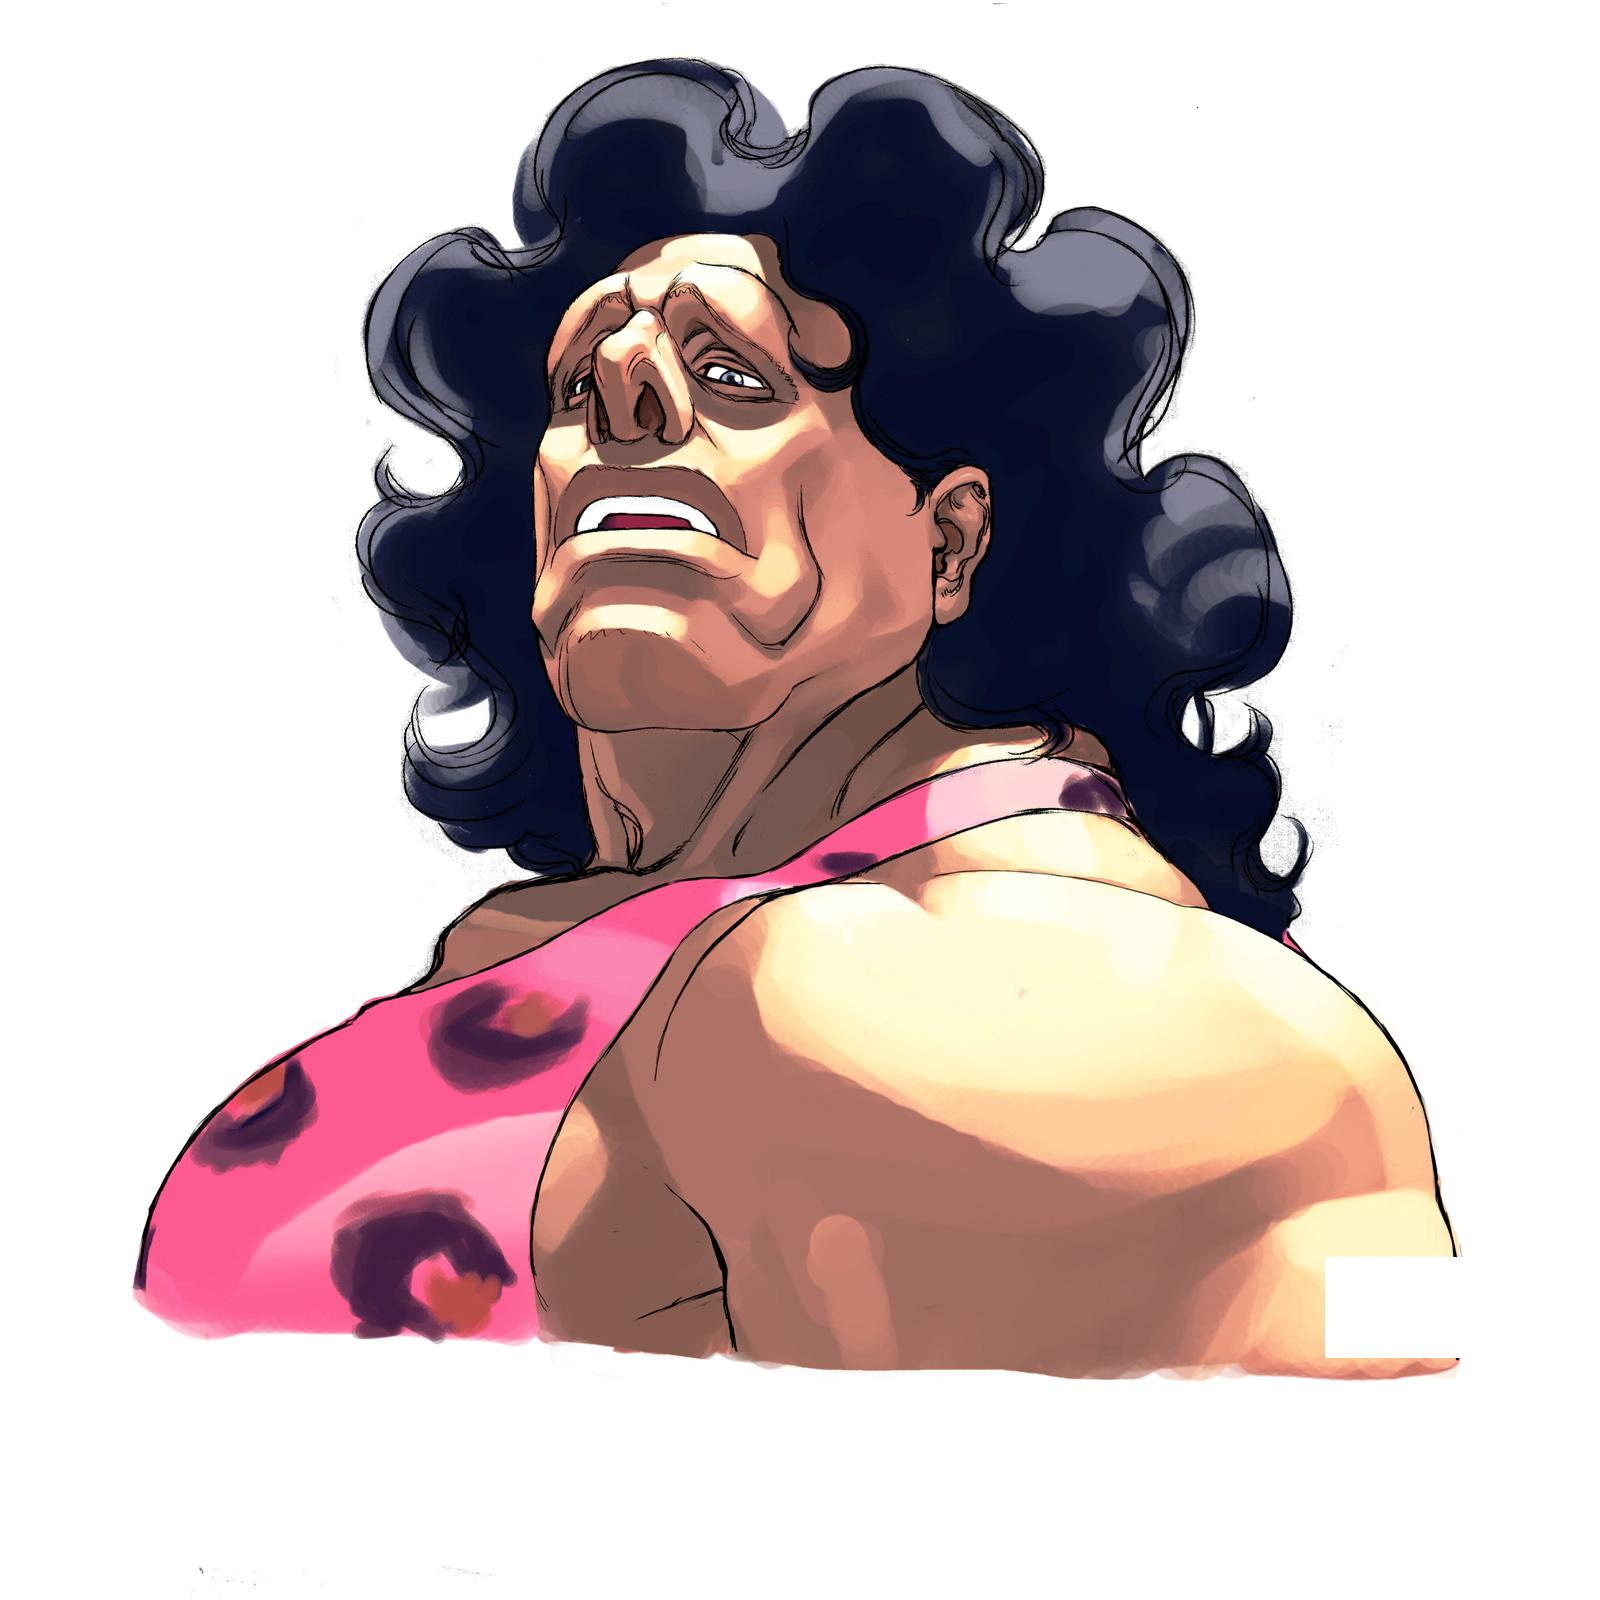 HUGO - The Street Fighter Wiki - Street Fighter 4, Street Fighter 2 ...